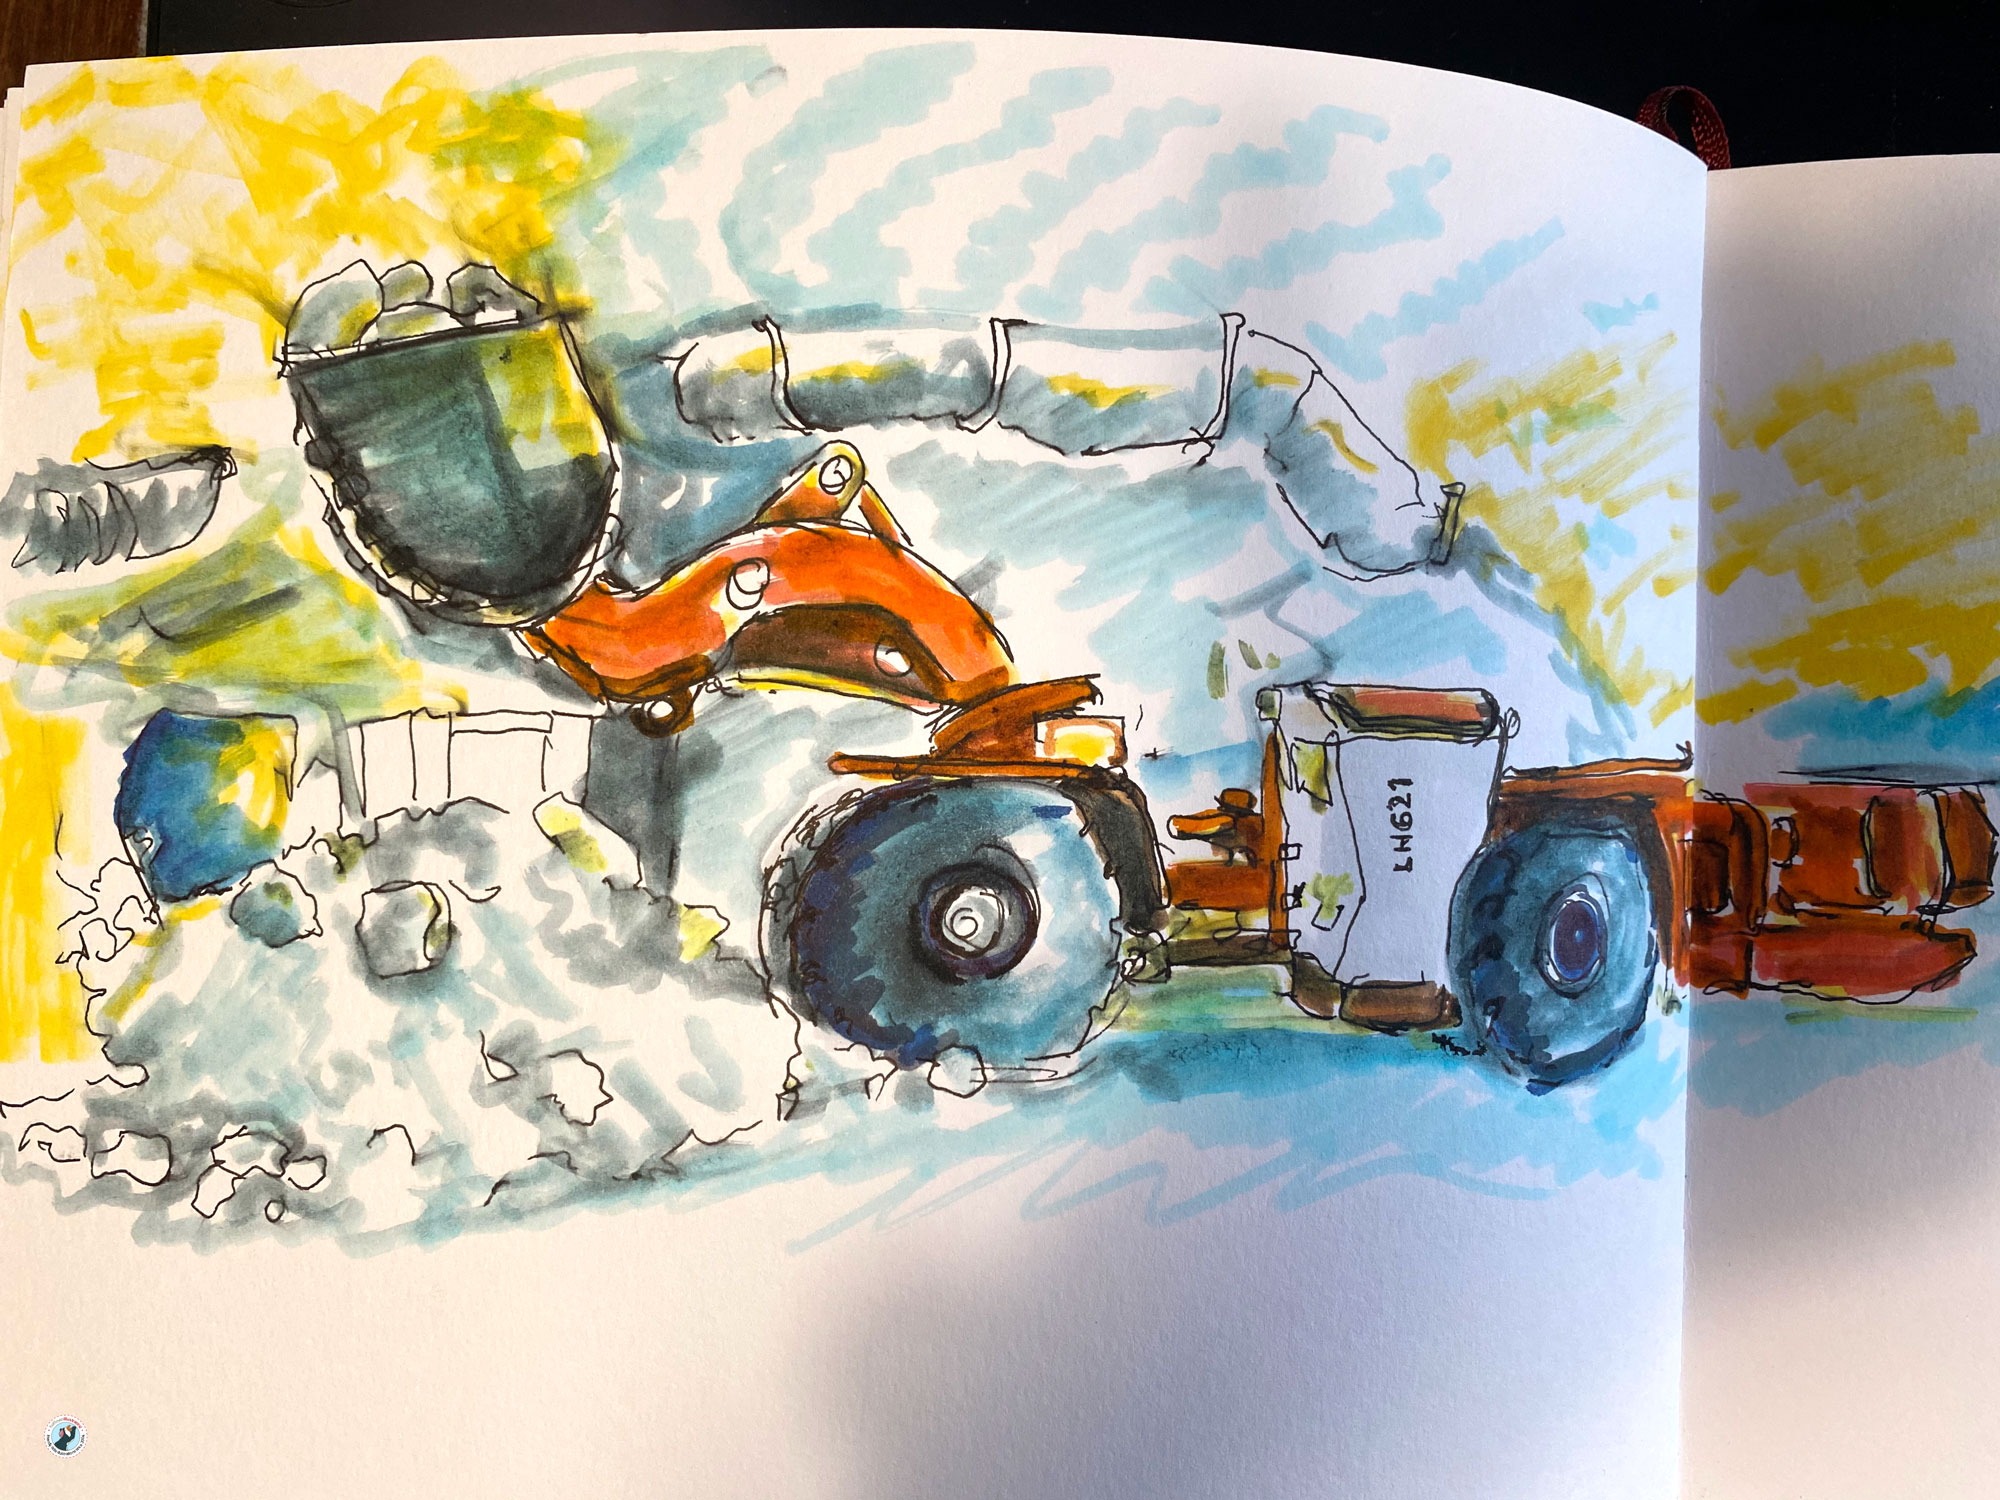 This is a coloured sketch of salt mine machinery based on a photo provided to me from the Heilbronn Salt Mines. It is an automated kind of underground bulldozer.